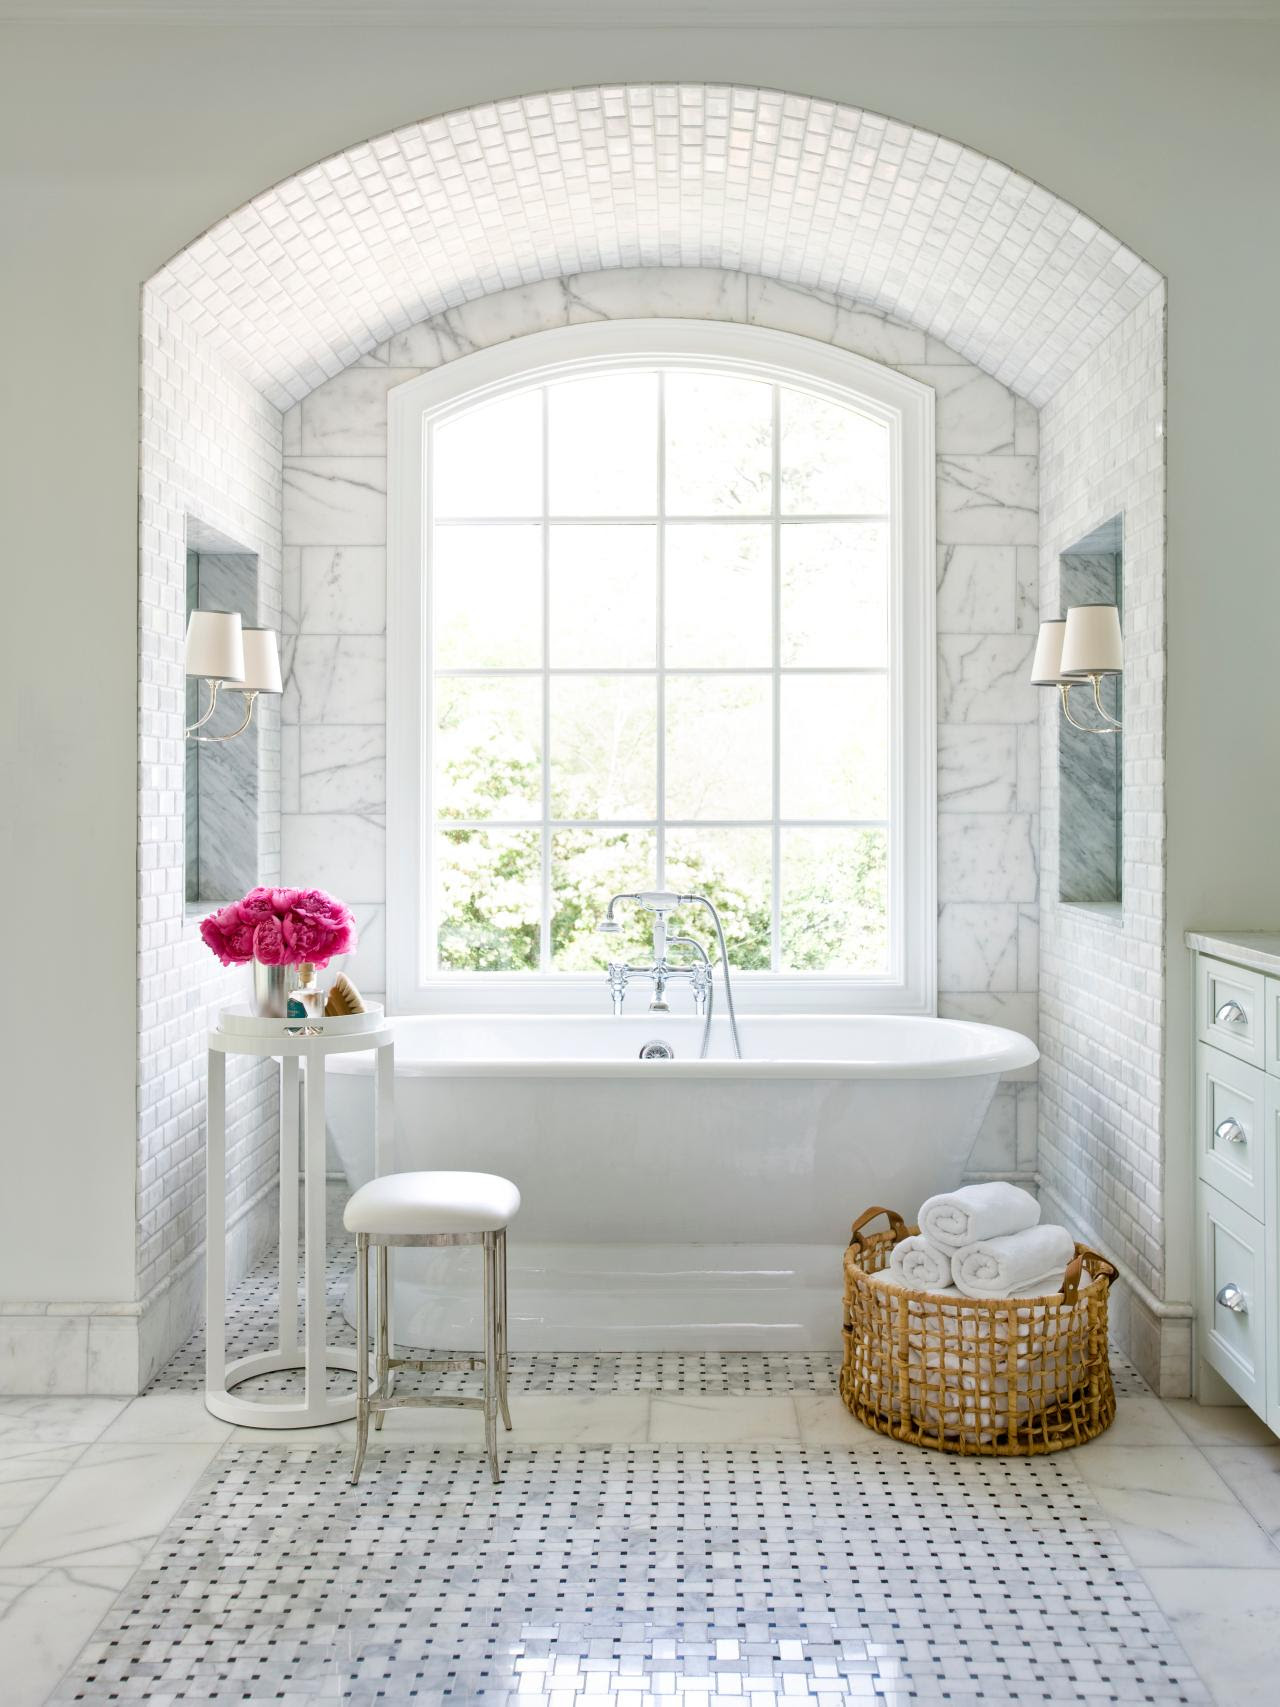 Top 20 Bathroom Tile Trends of 2017 | HGTV's Decorating ...